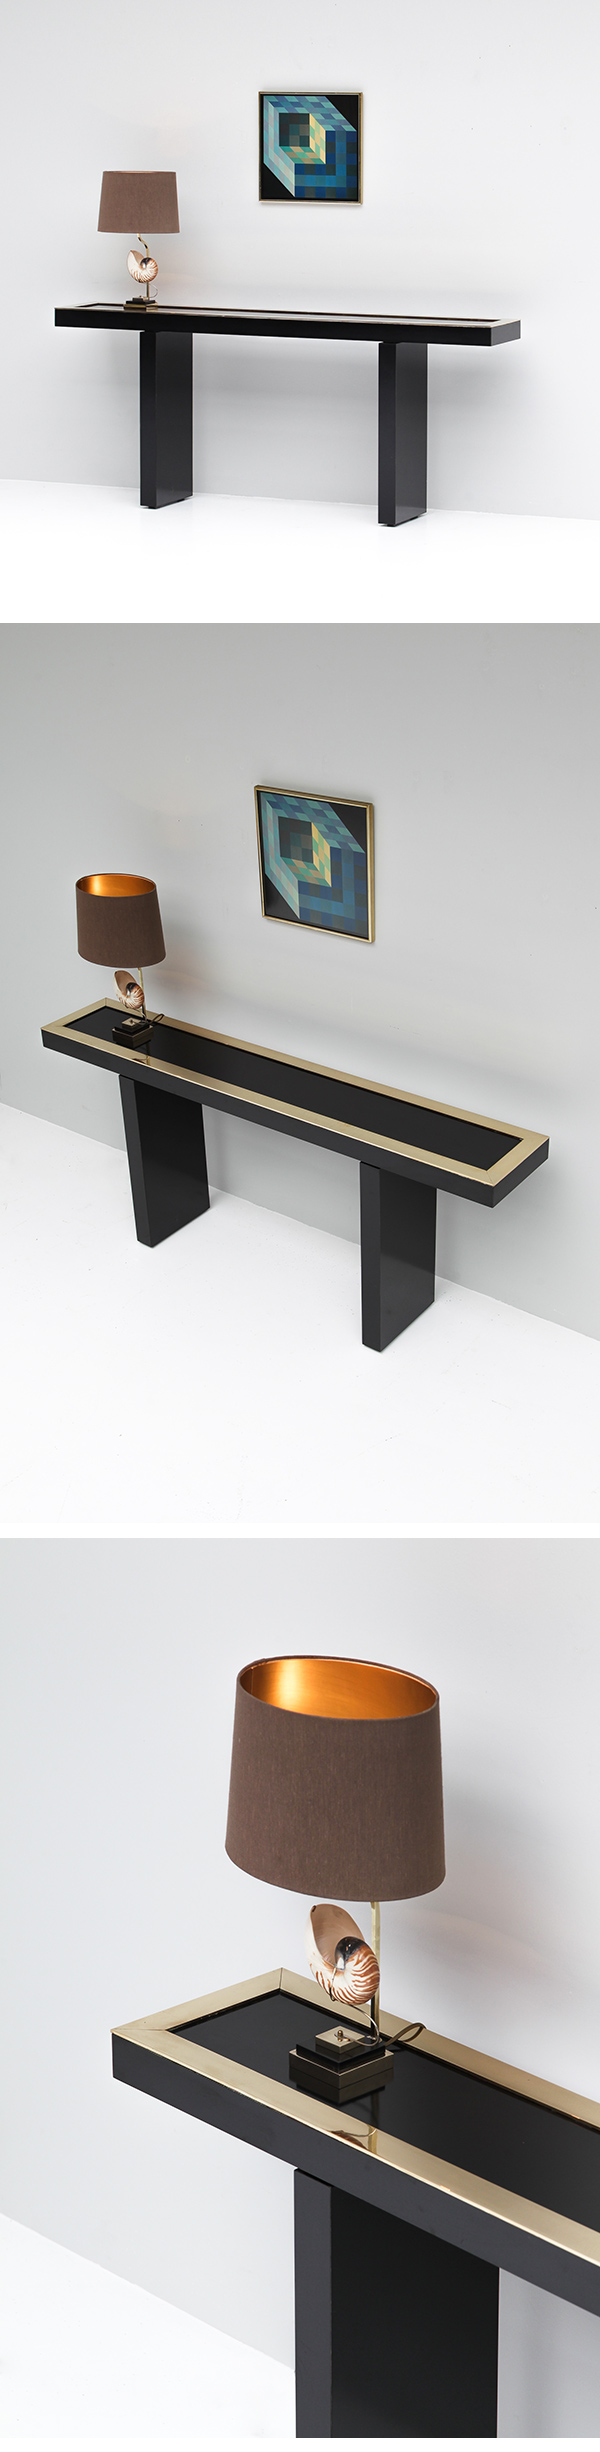 1970s, blackn laminated and brass console